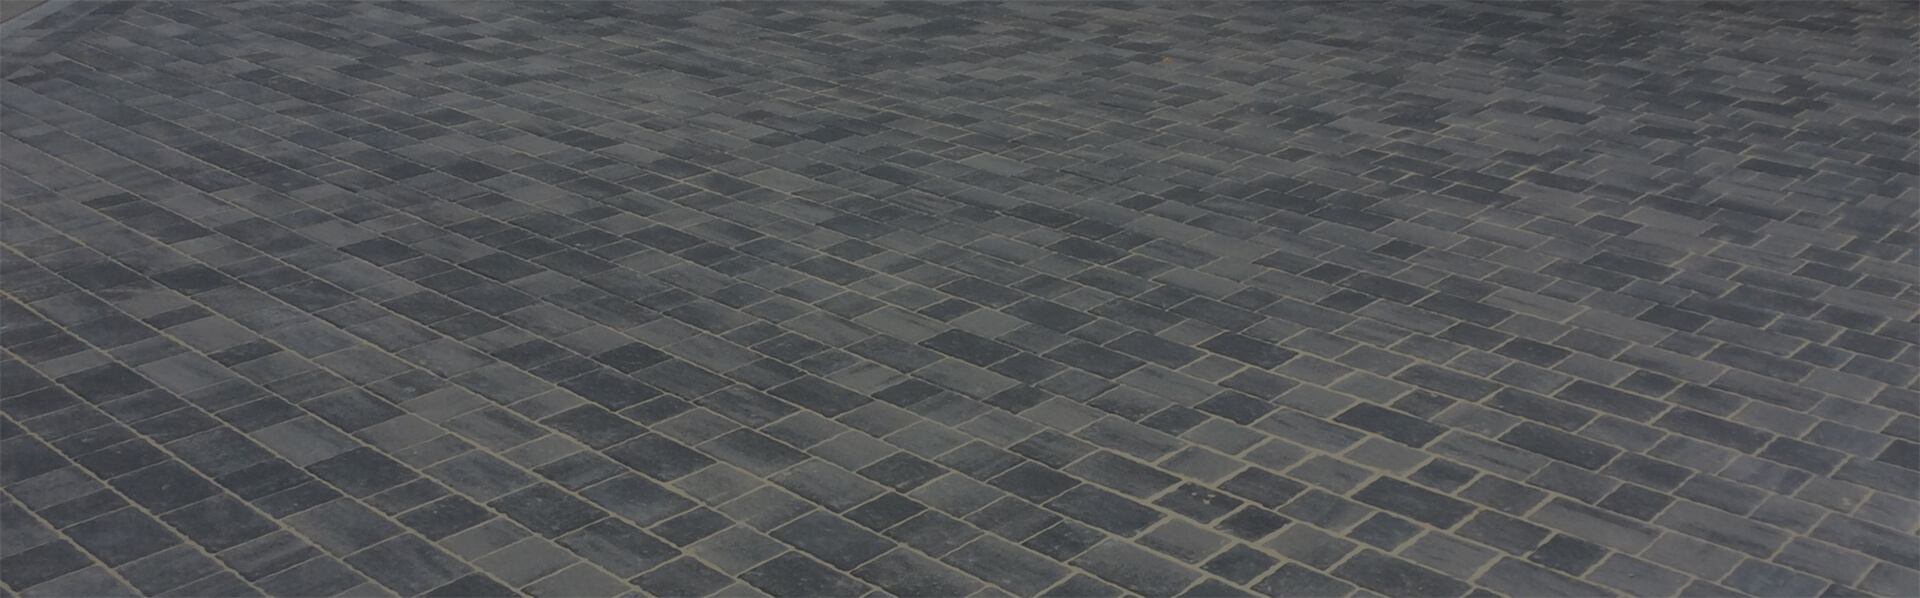 Block Paving Suppliers